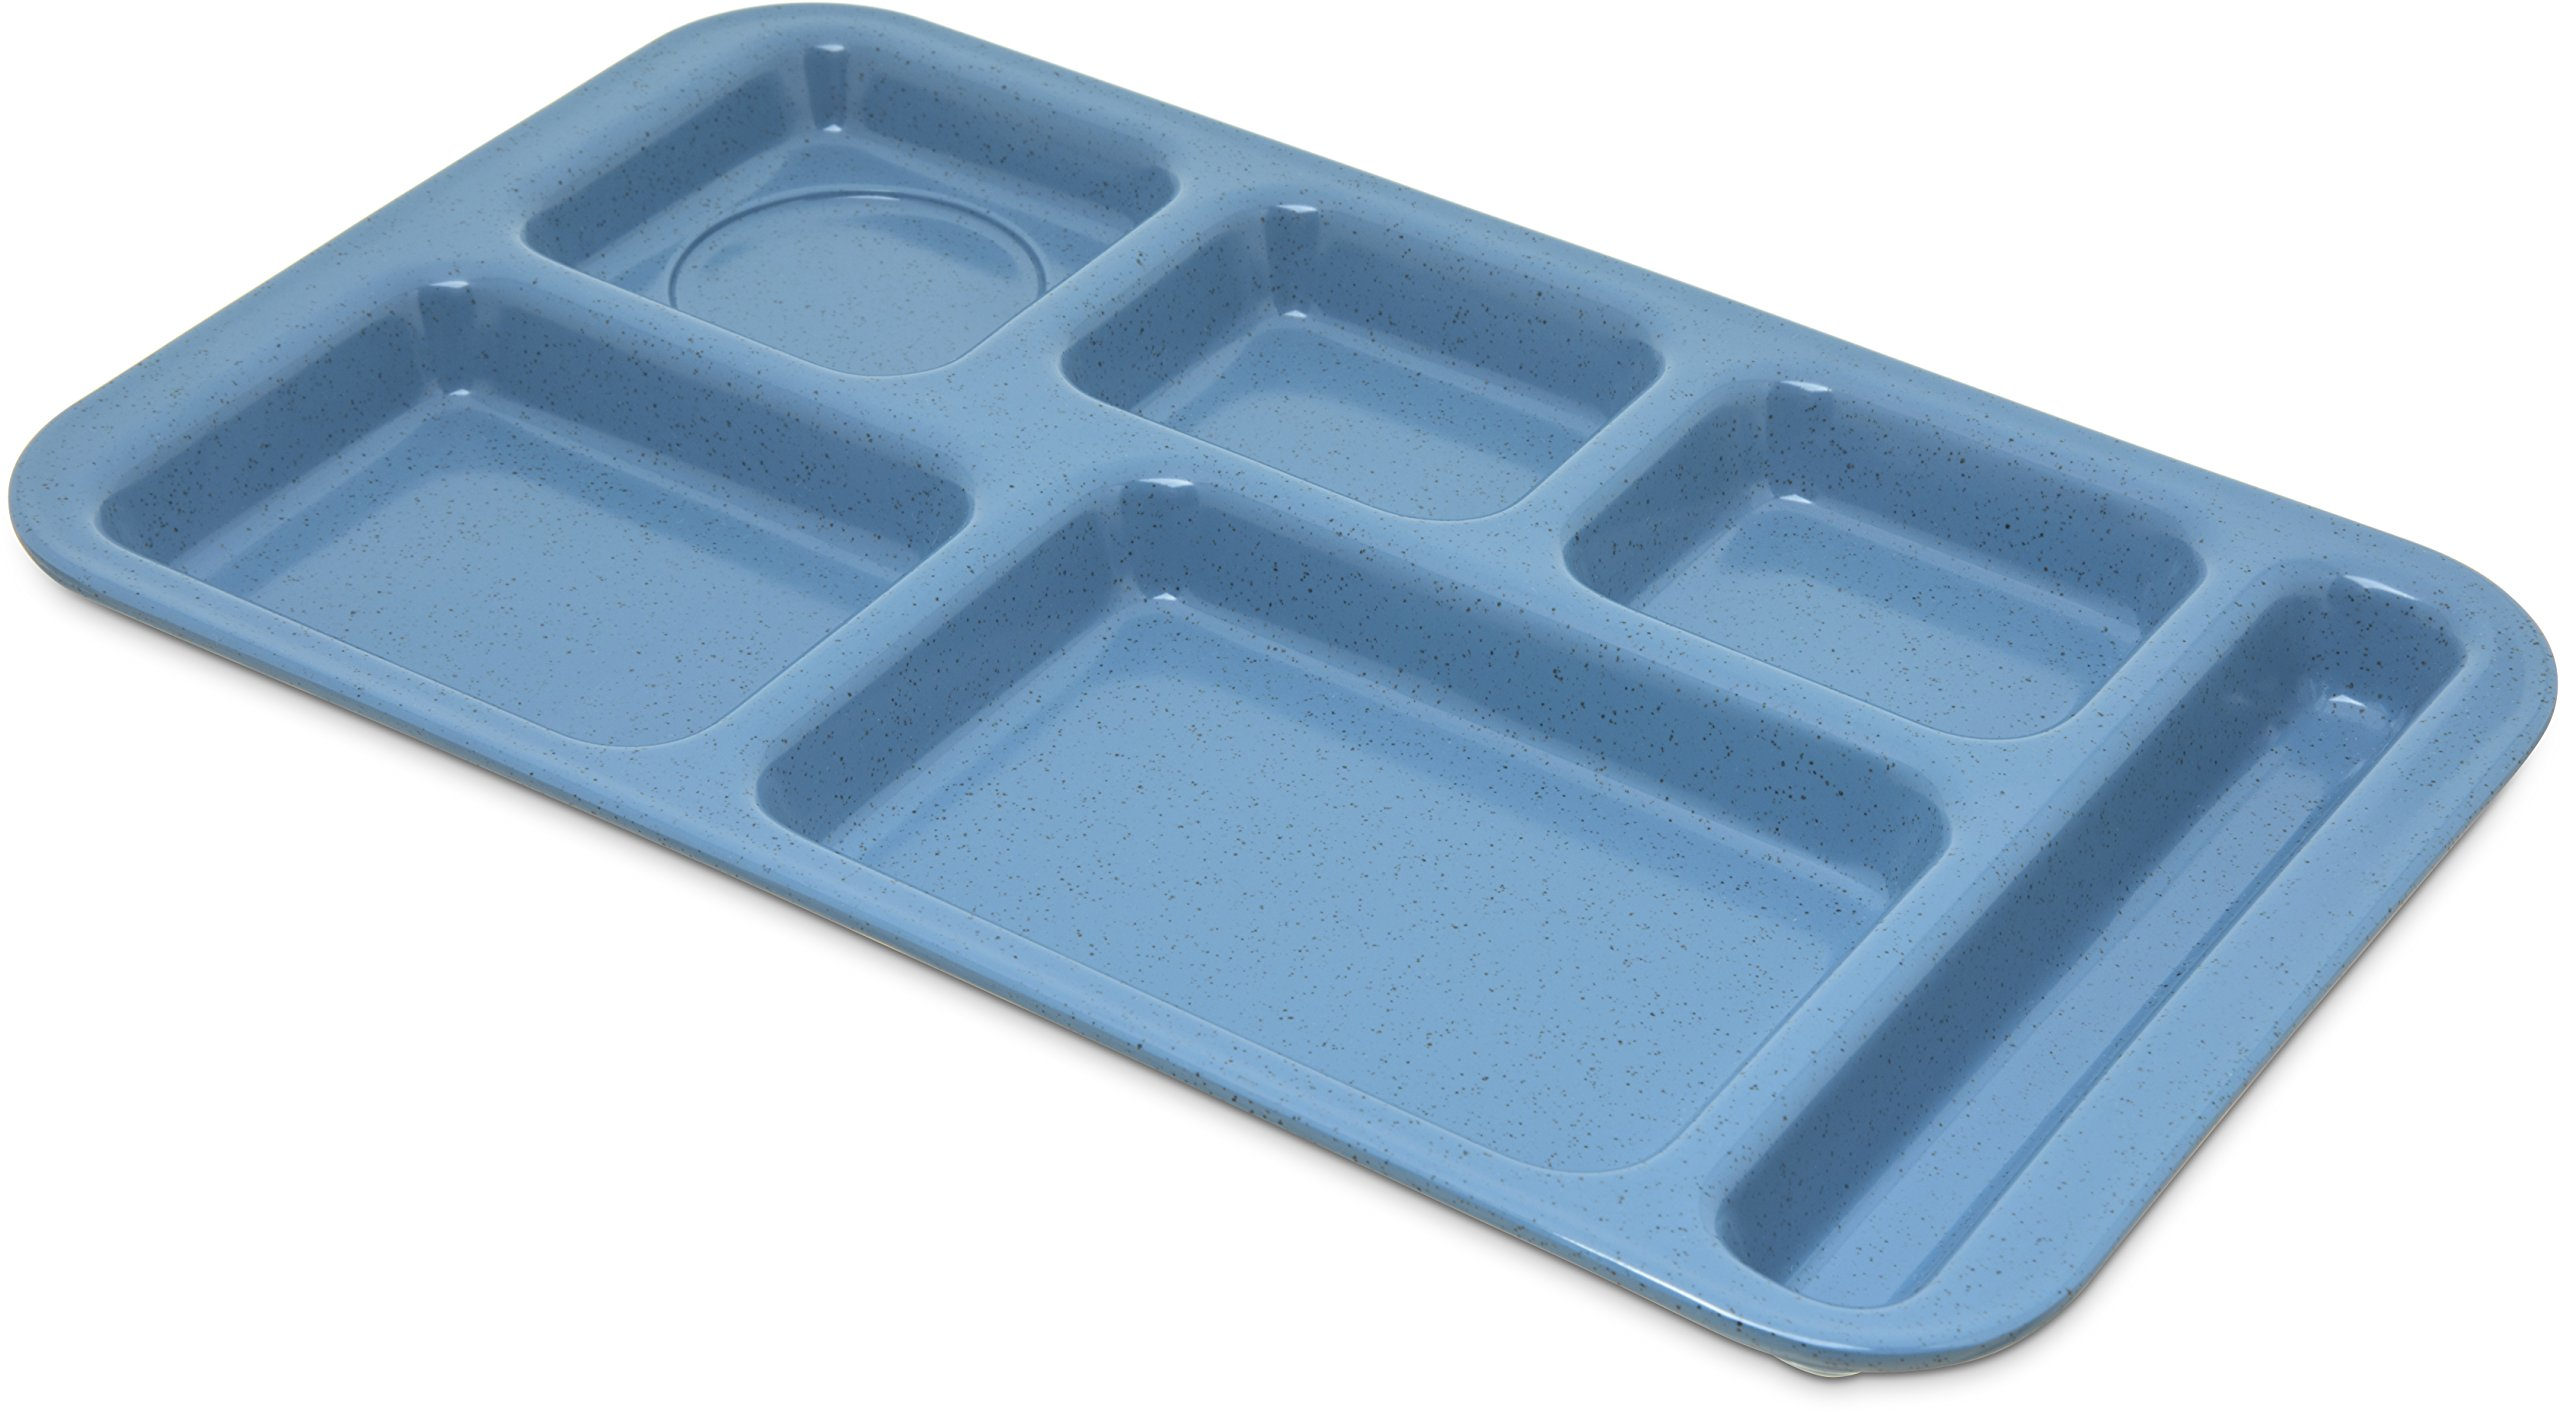 Carlisle 4398392 Melamine Right-Hand 6-Compartment Divided Tray, 15'' X 9'', Sandshade (Case of 12)